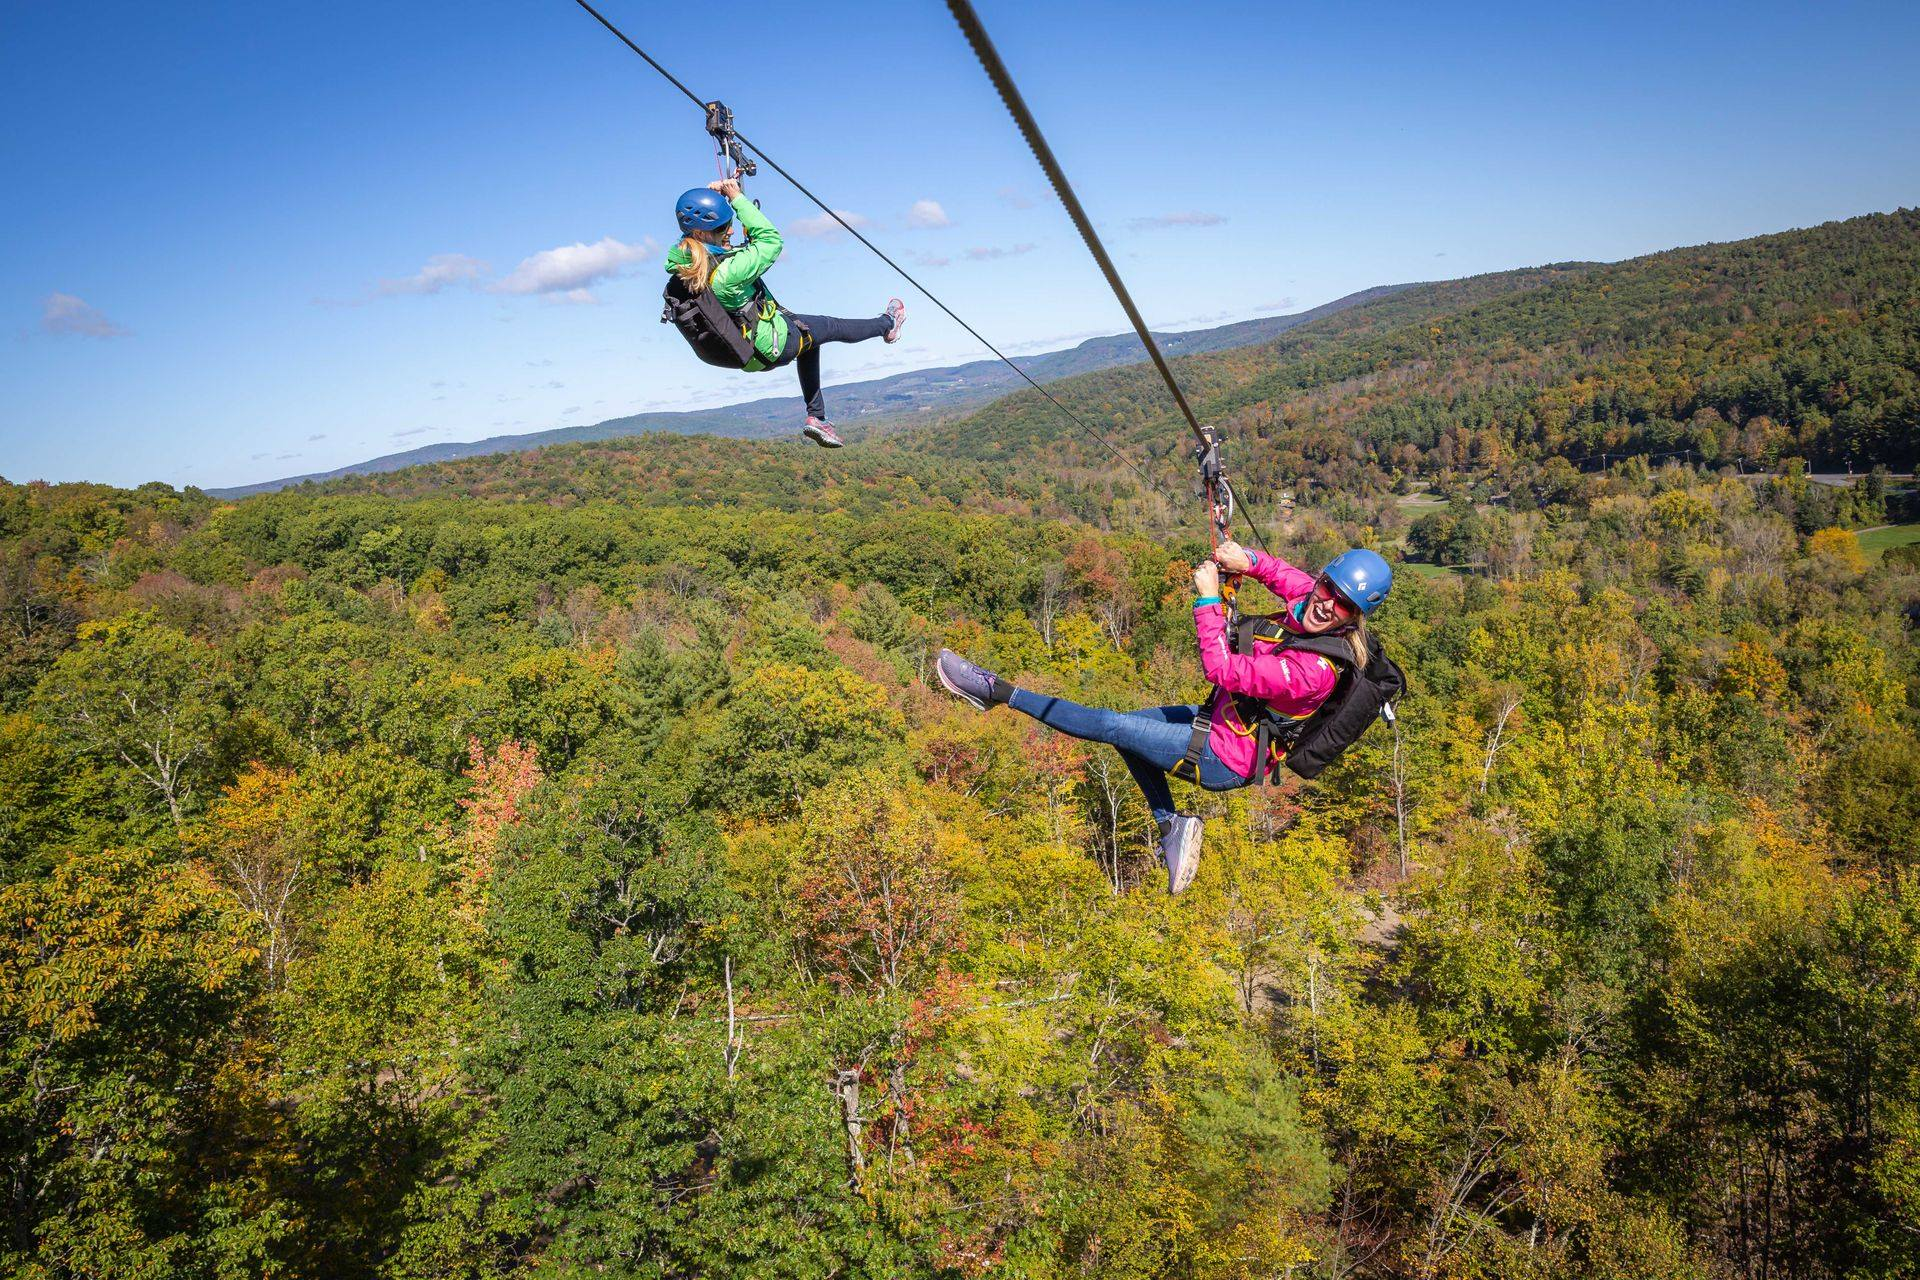 The Longest Zipline In America Is Now Up And Running At New York's Catamount Mountain Resort